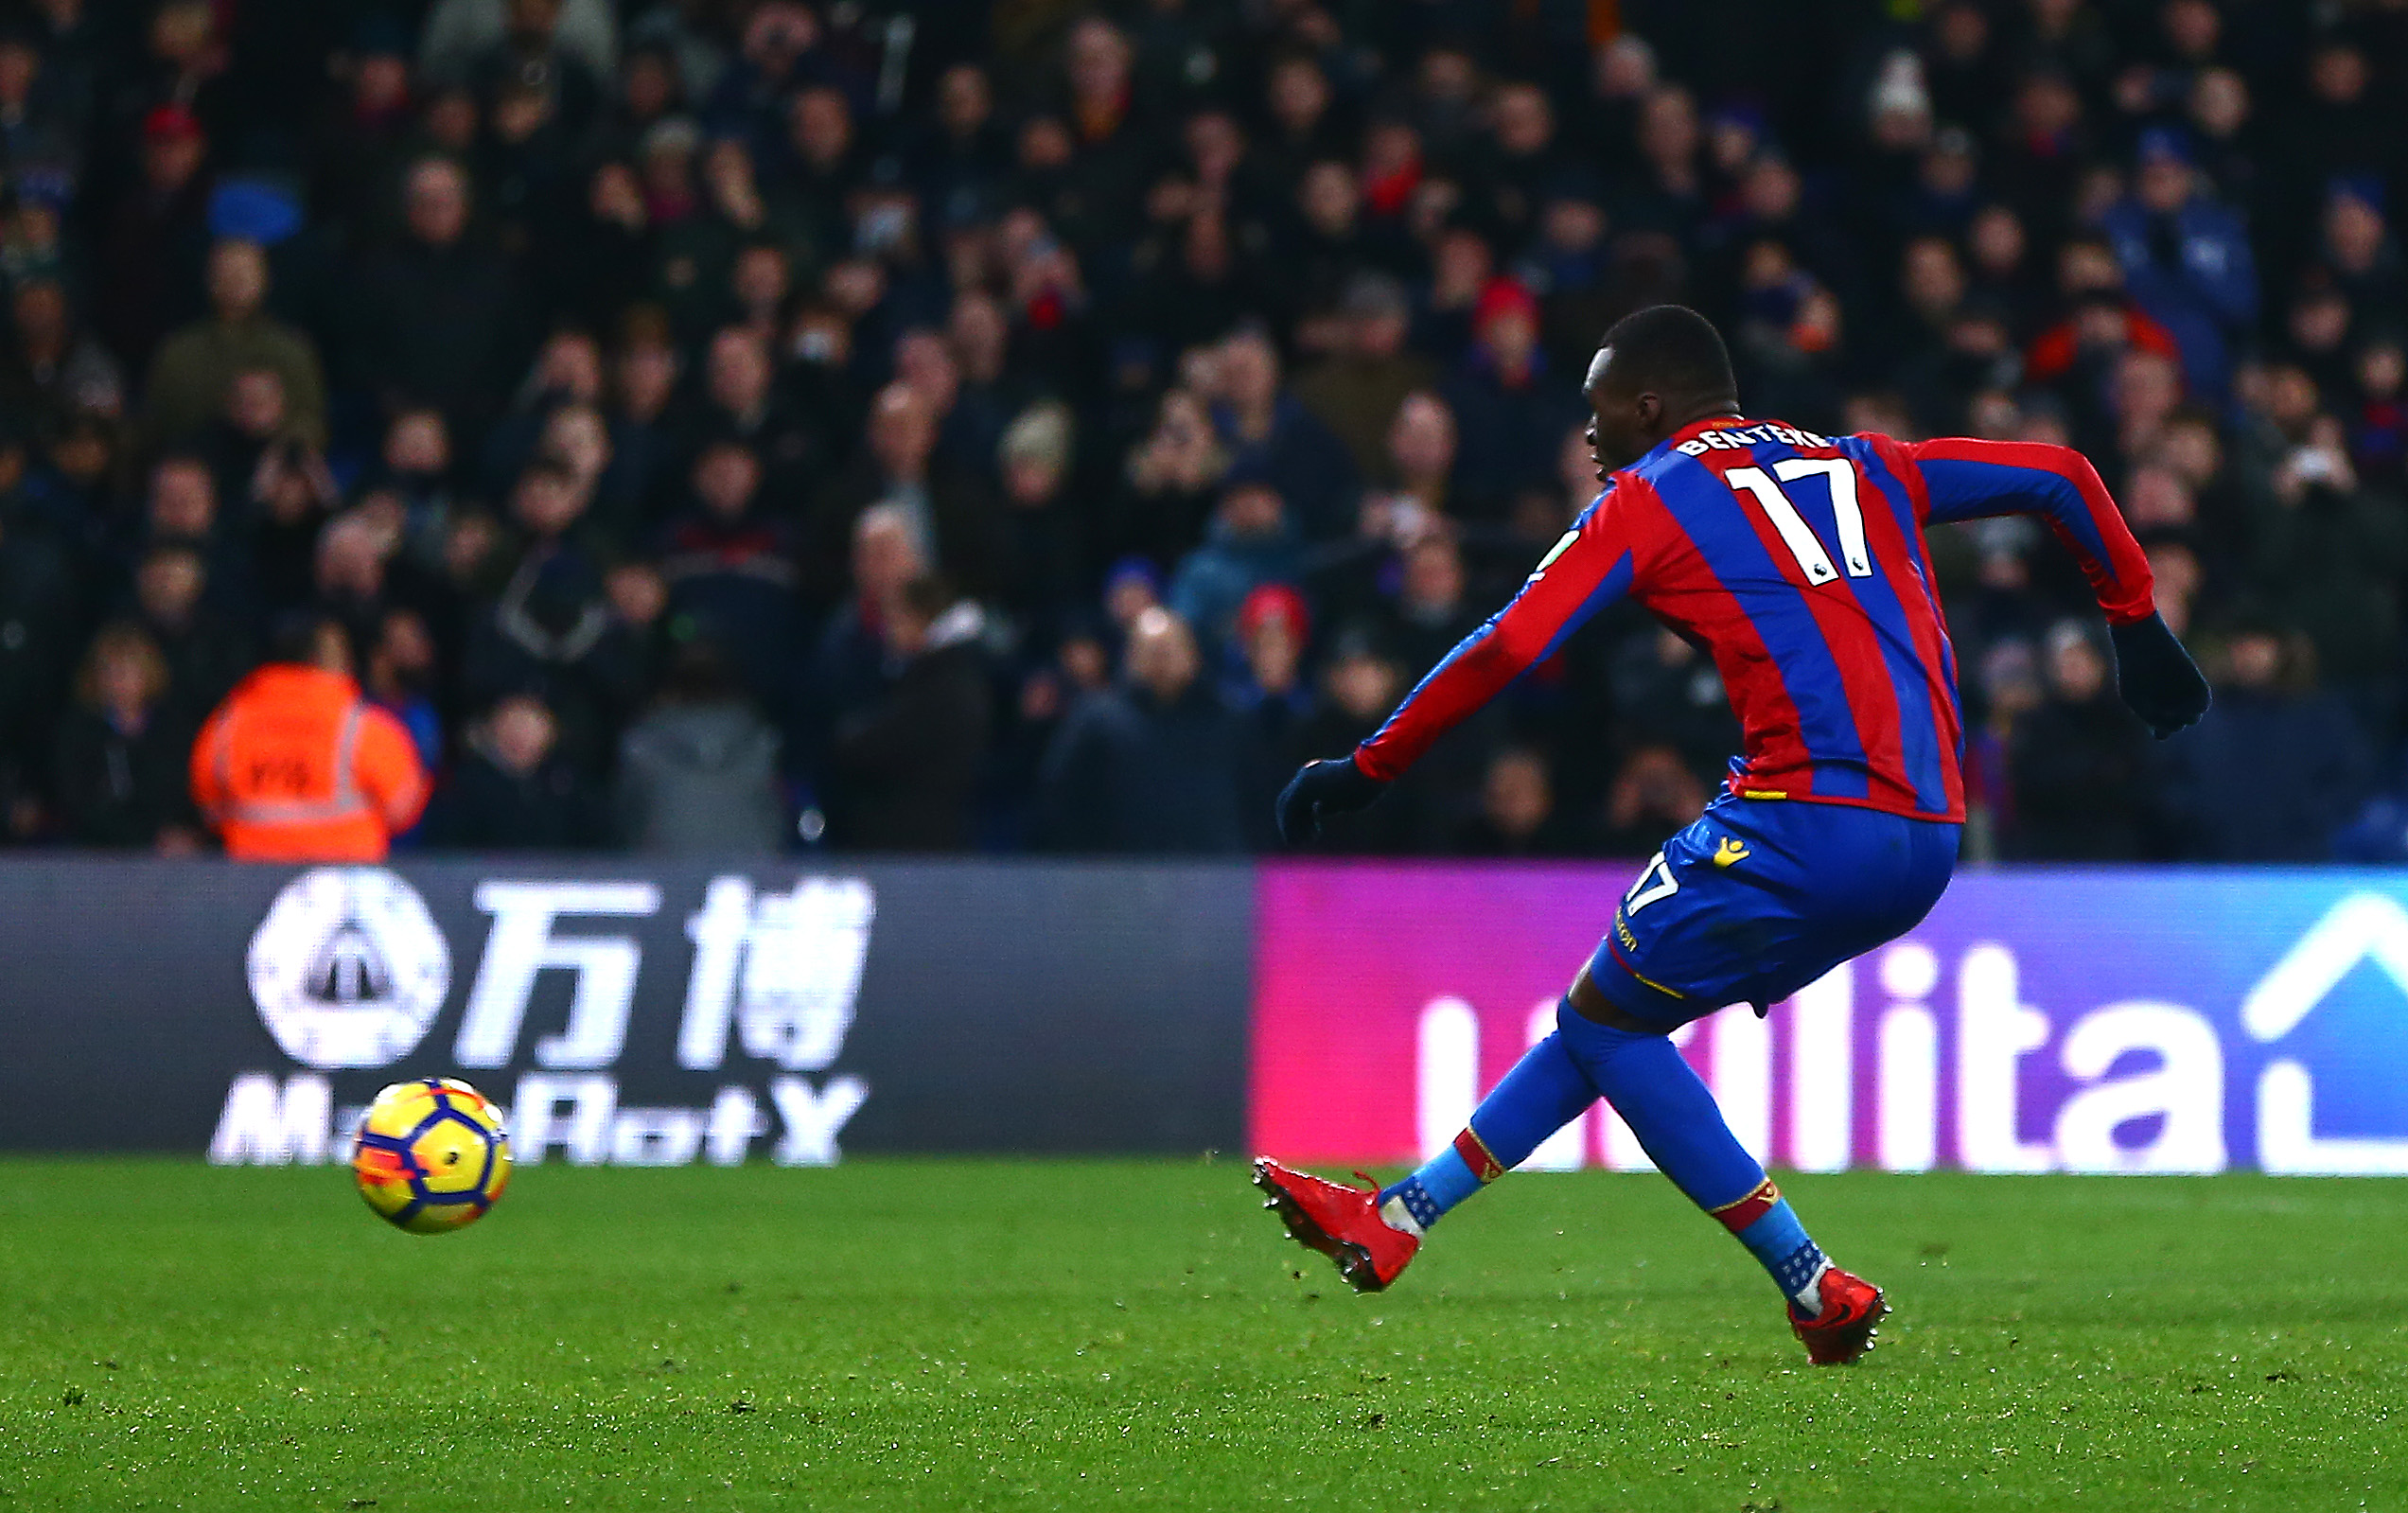 Crystal Palace boss Hodgson warns Benteke of axe